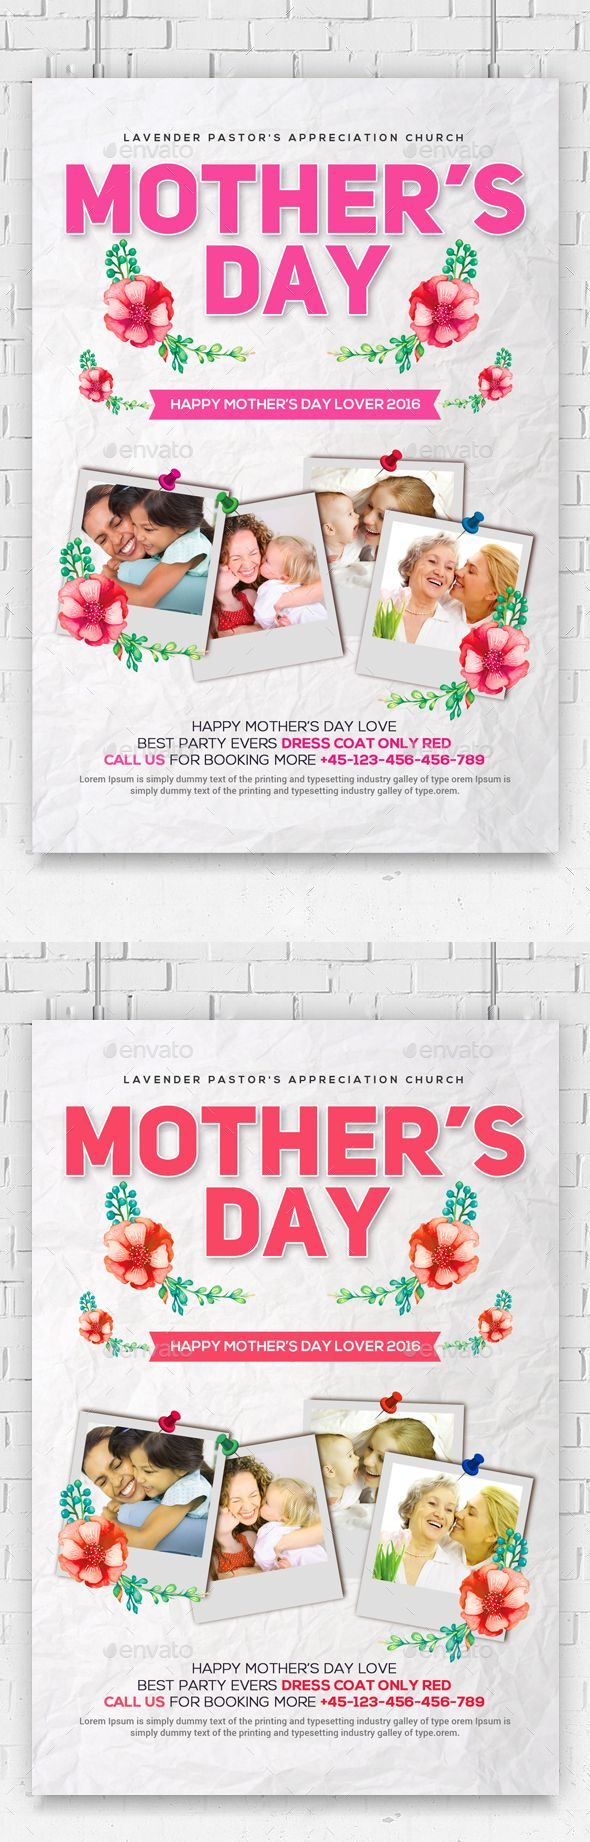 Happy MotherS Day Flyer Psd  Events Flyers  Big Friends Ideas